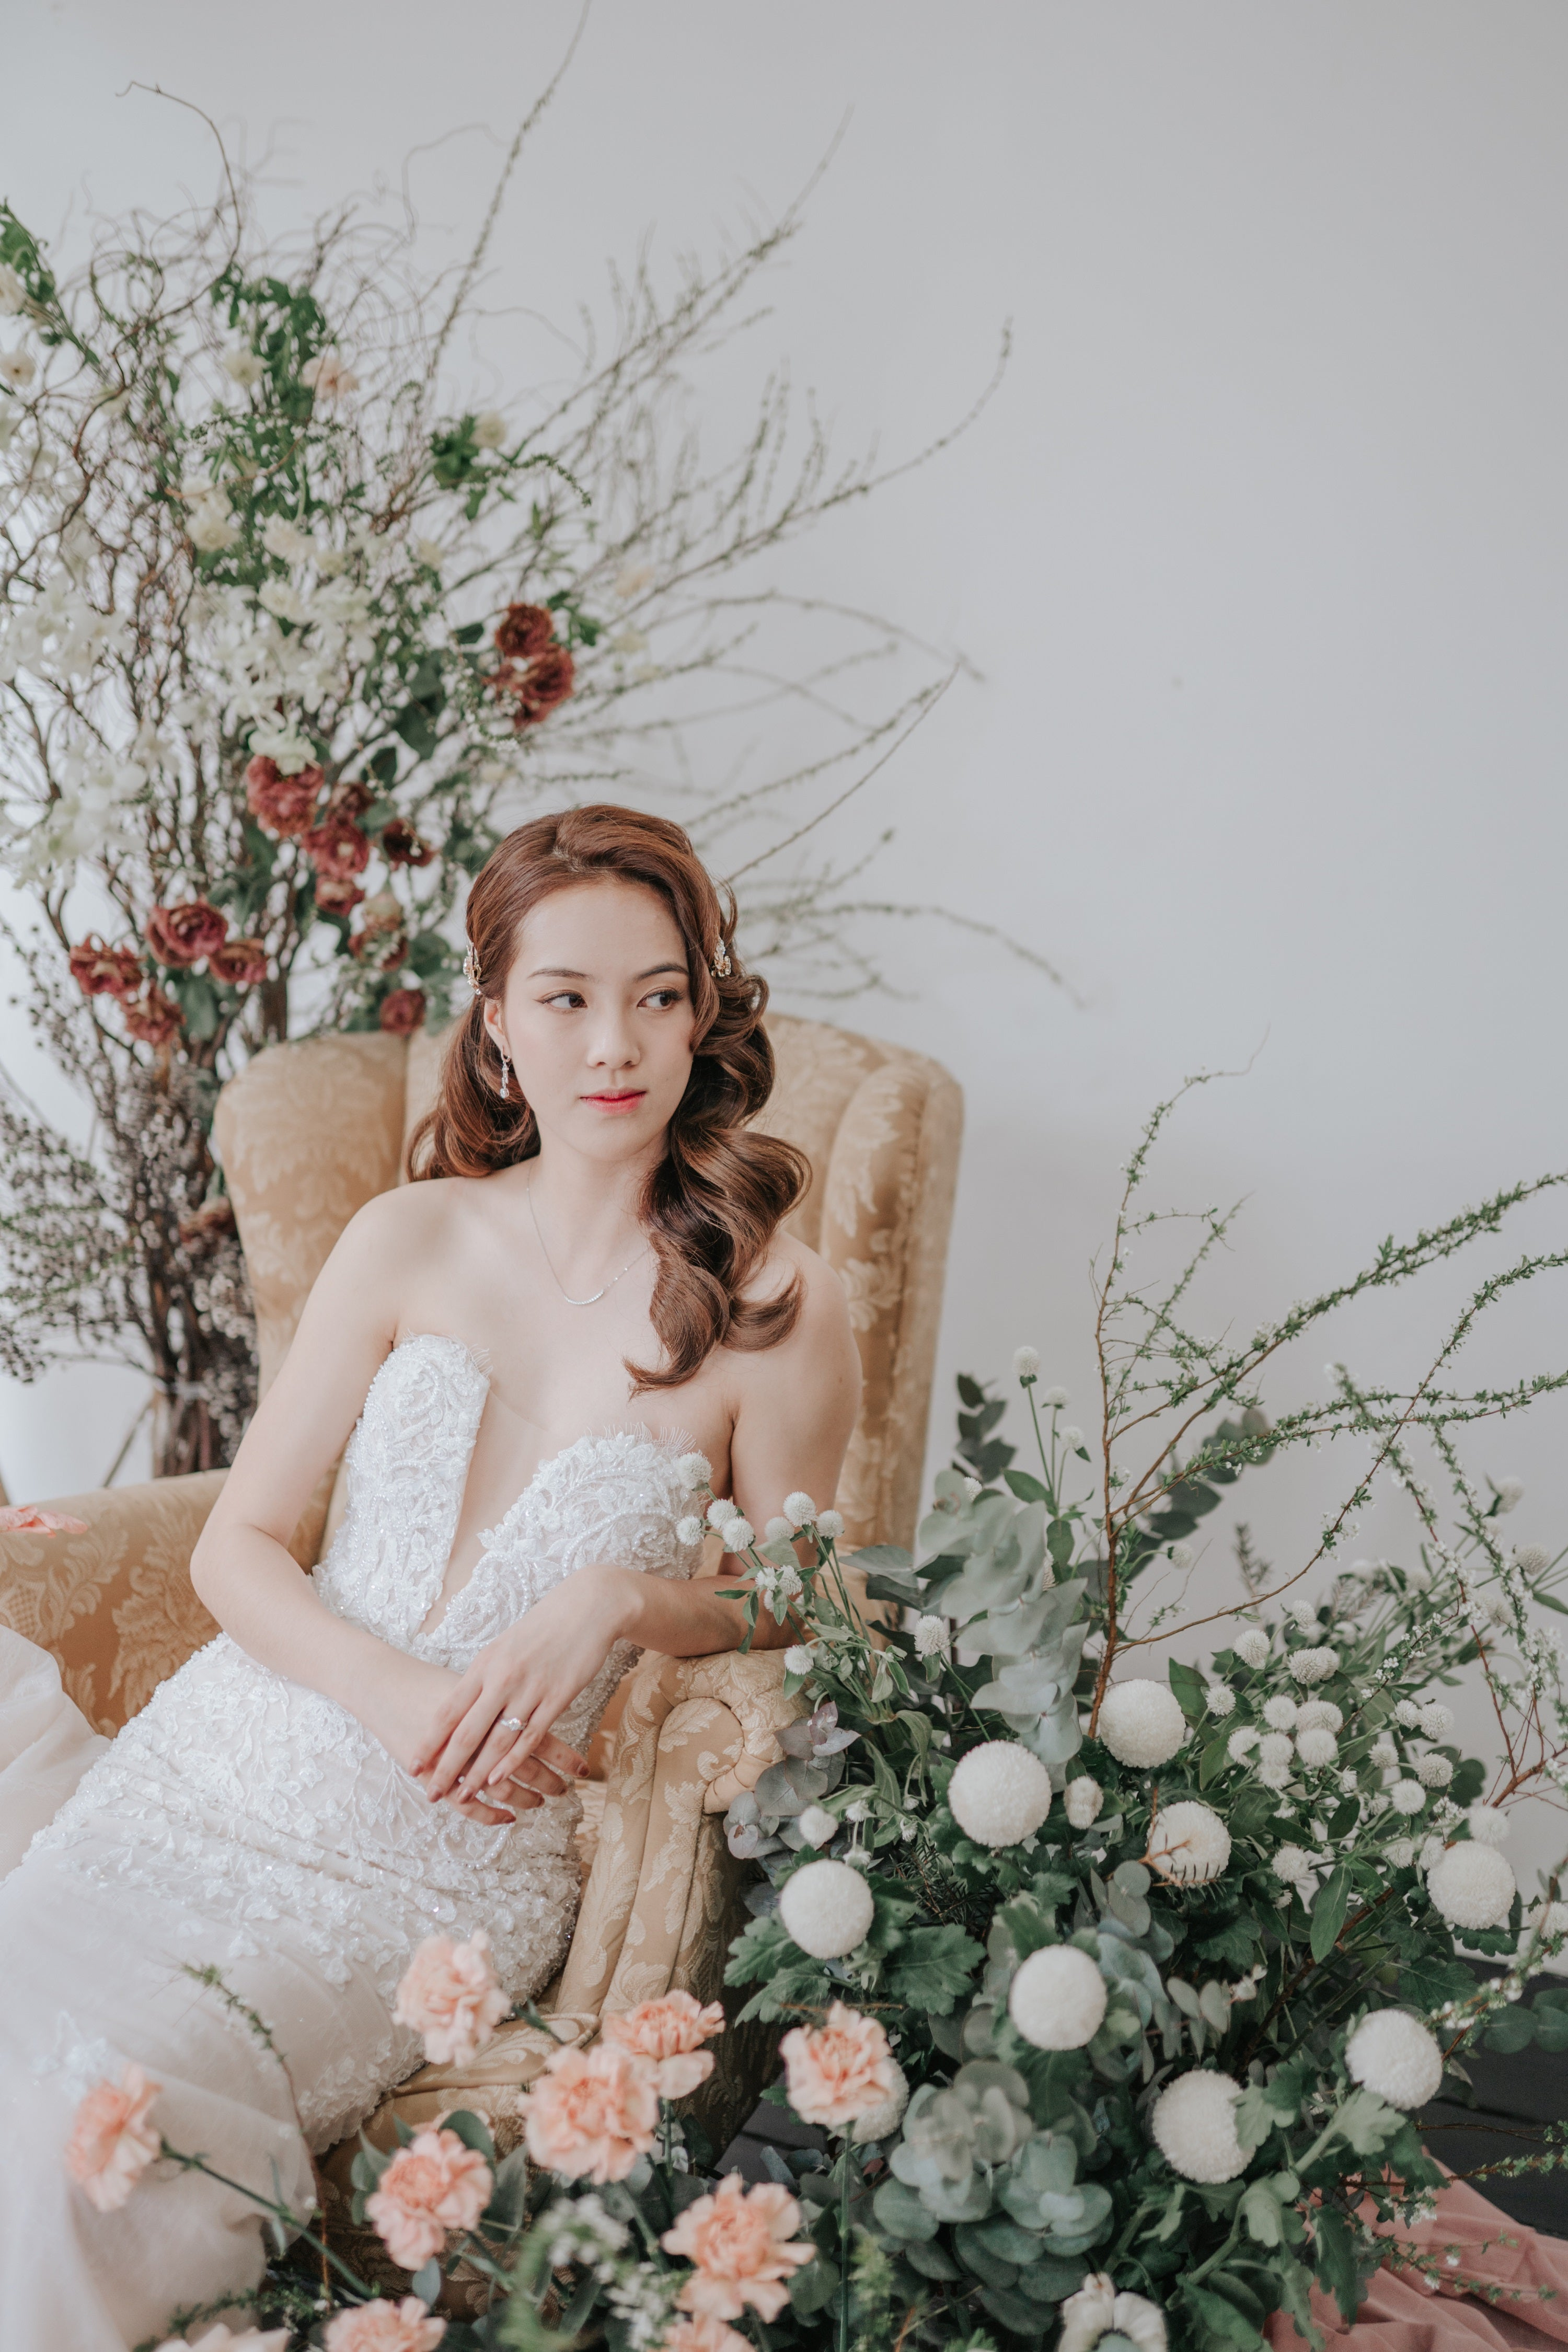 Bride wearing deep-V, strapless wedding dress with a diamond wedding ring, seated looking sideways